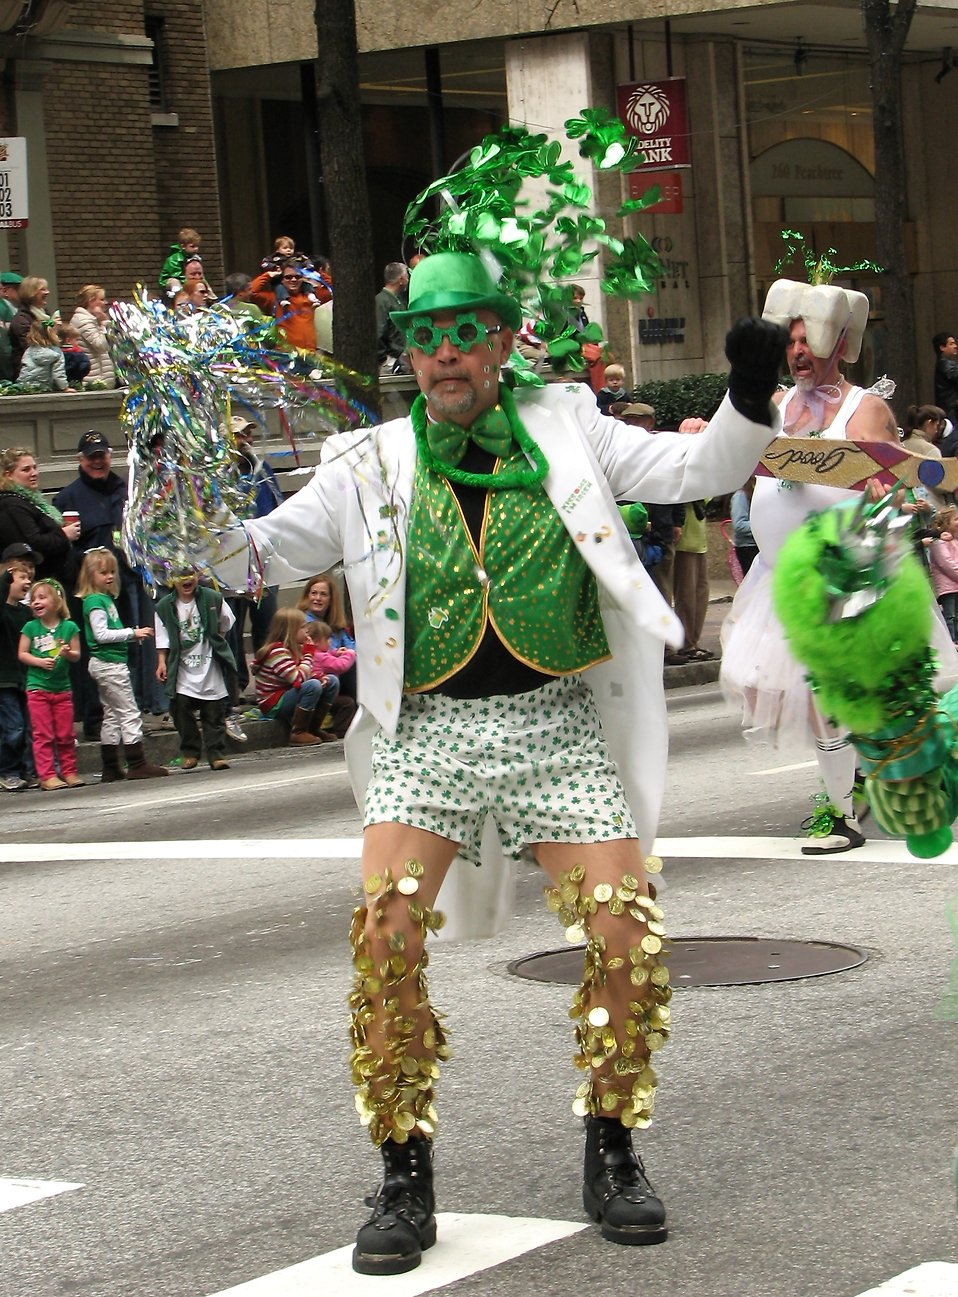 A man in a funny costume in the 2010 Saint Patricks Day Parade in Atlanta, Georgia : Free Stock Photo